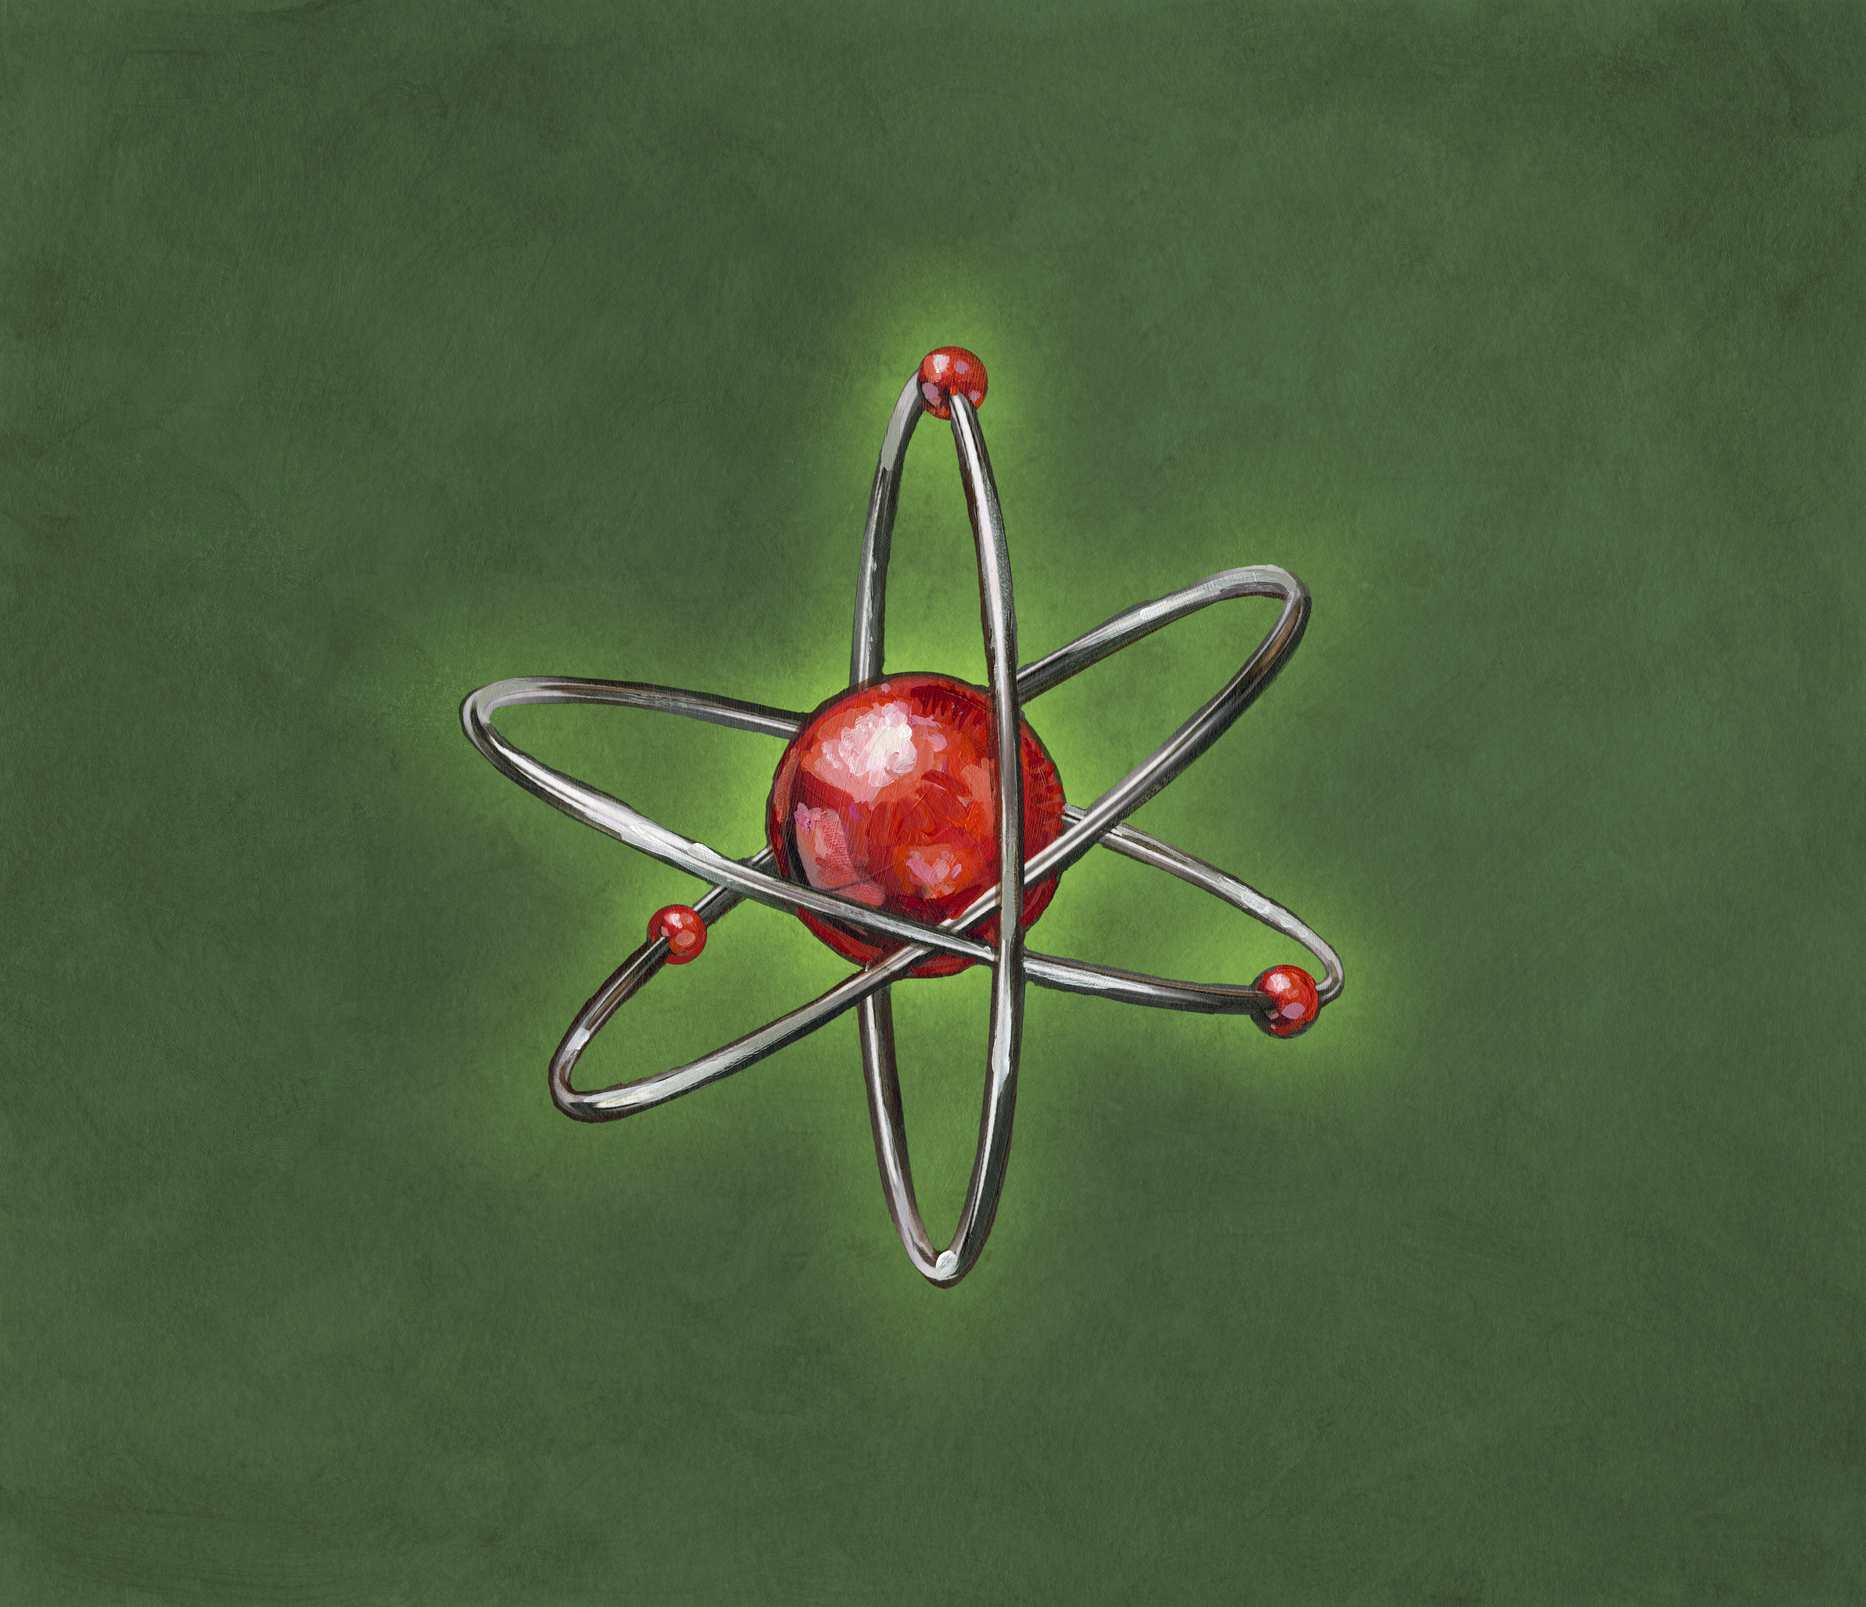 Atom orbited by electrons